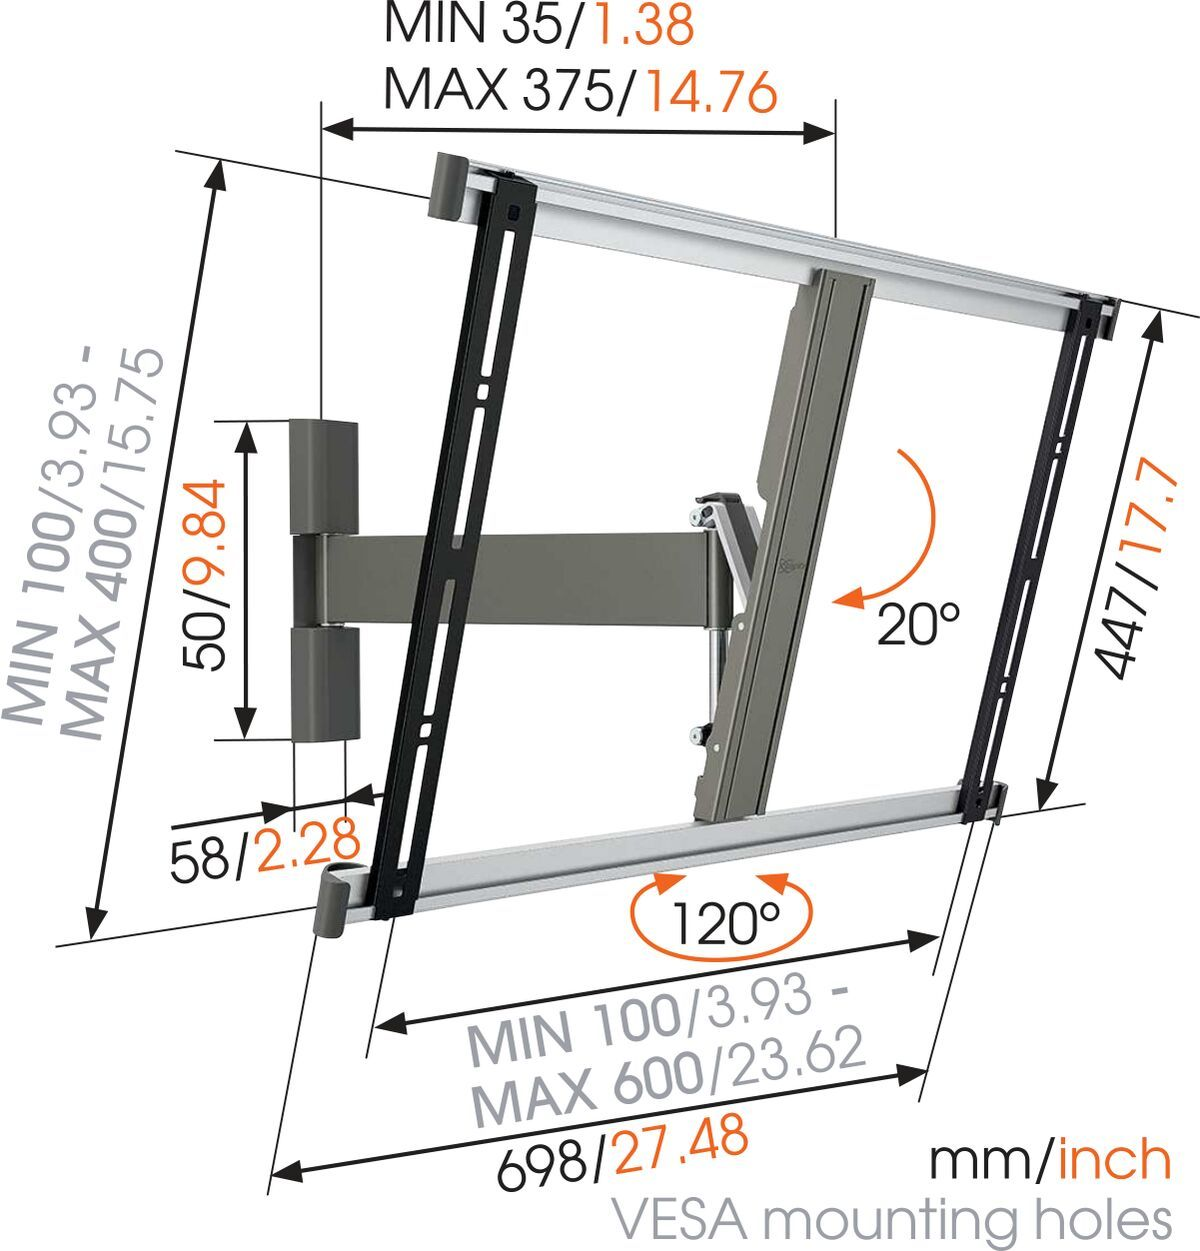 Vogel's THIN 325 UltraThin Full-Motion TV Wall Mount - Suitable for 40 up to 65 inch TVs - Motion (up to 120°) - Tilt up to 20° - Dimensions